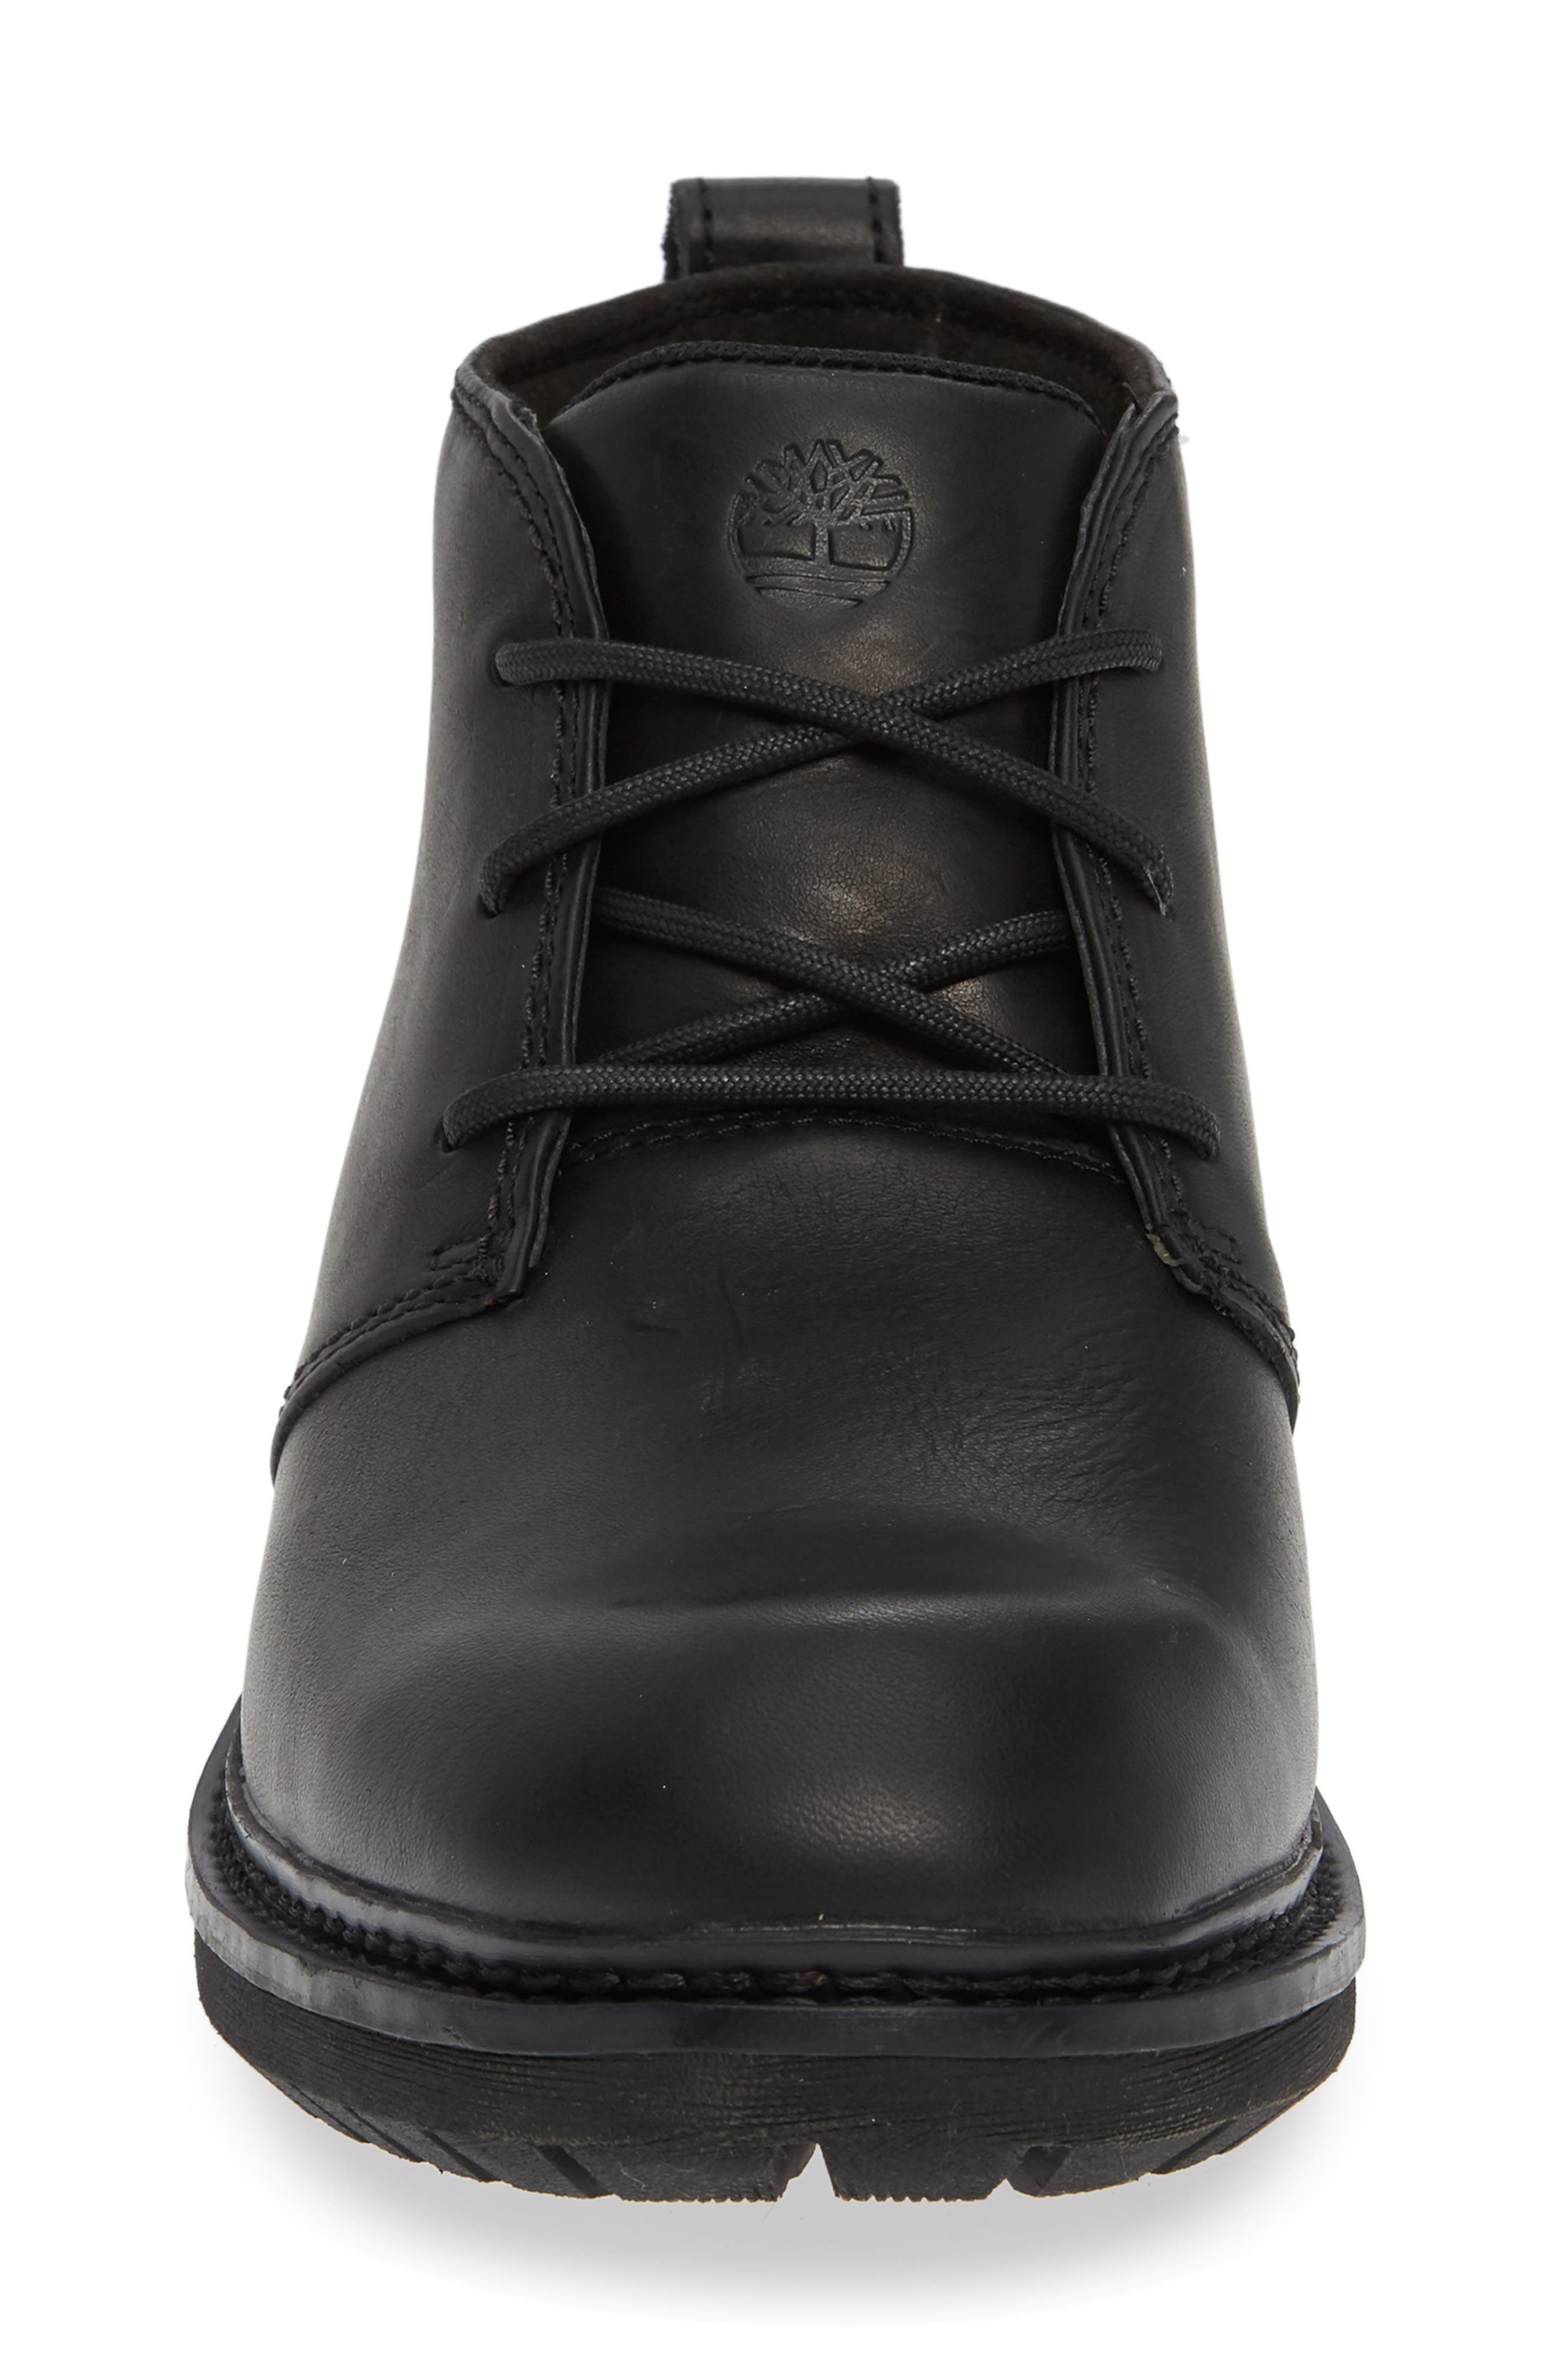 Logan Bay Water Resistant Chukka Boot,                             Alternate thumbnail 4, color,                             BLACK LEATHER